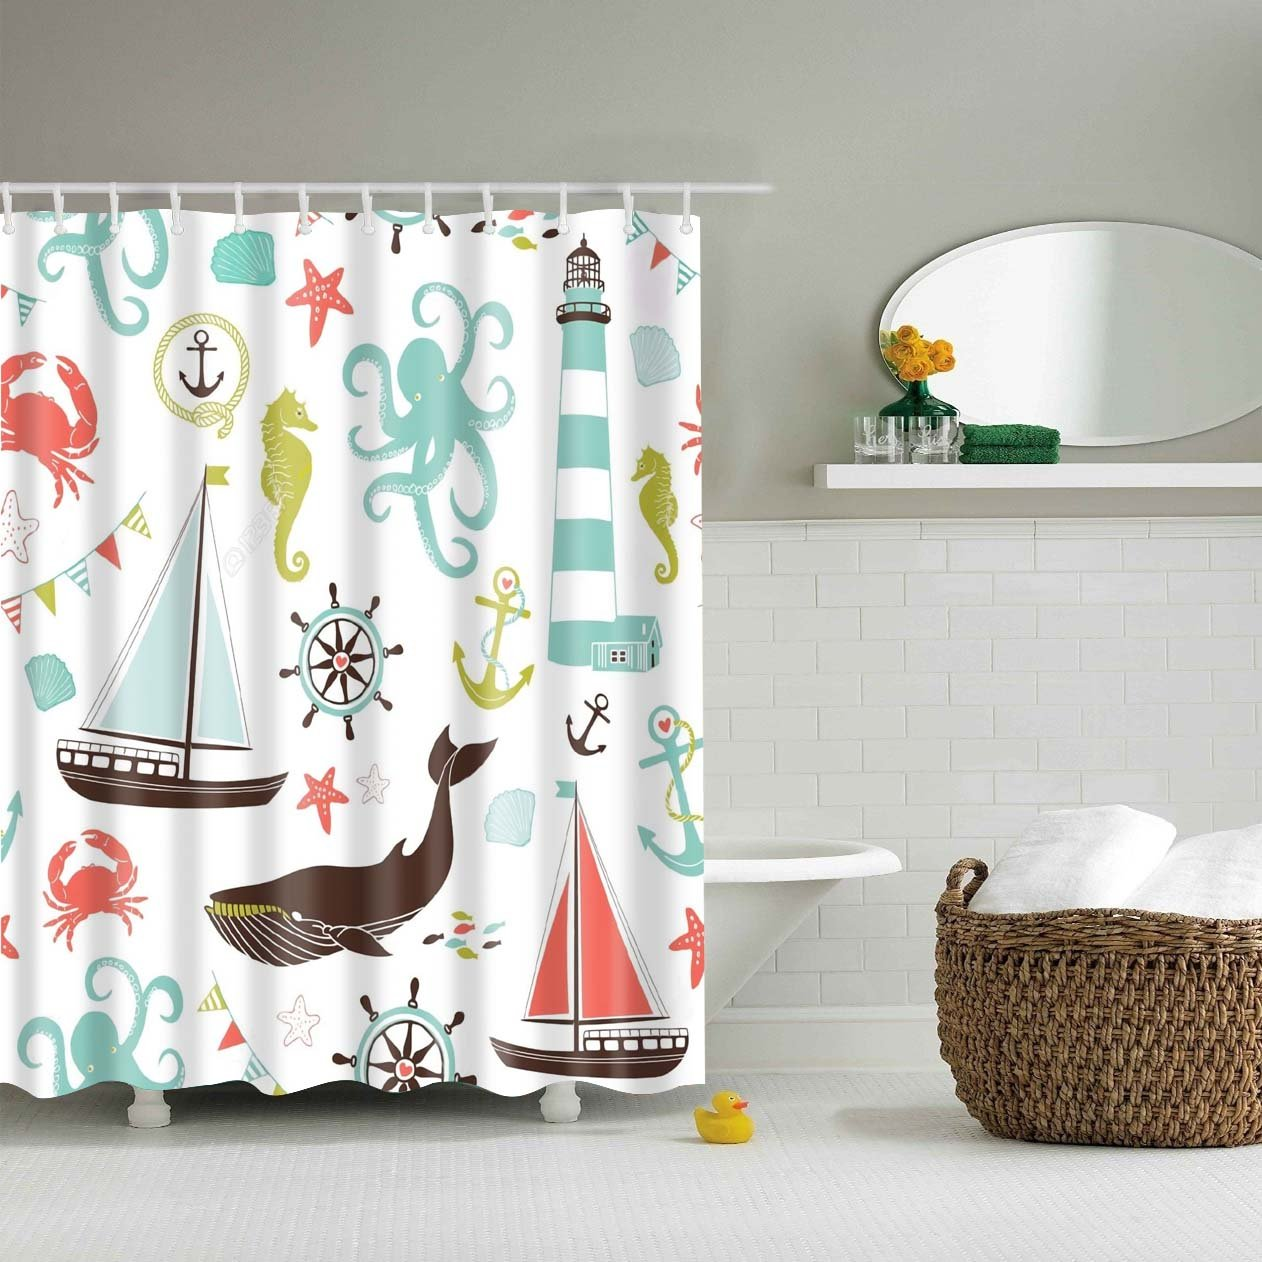 Ocean Themed Unisex Kids Shower Curtain Bathroom Decor Kids